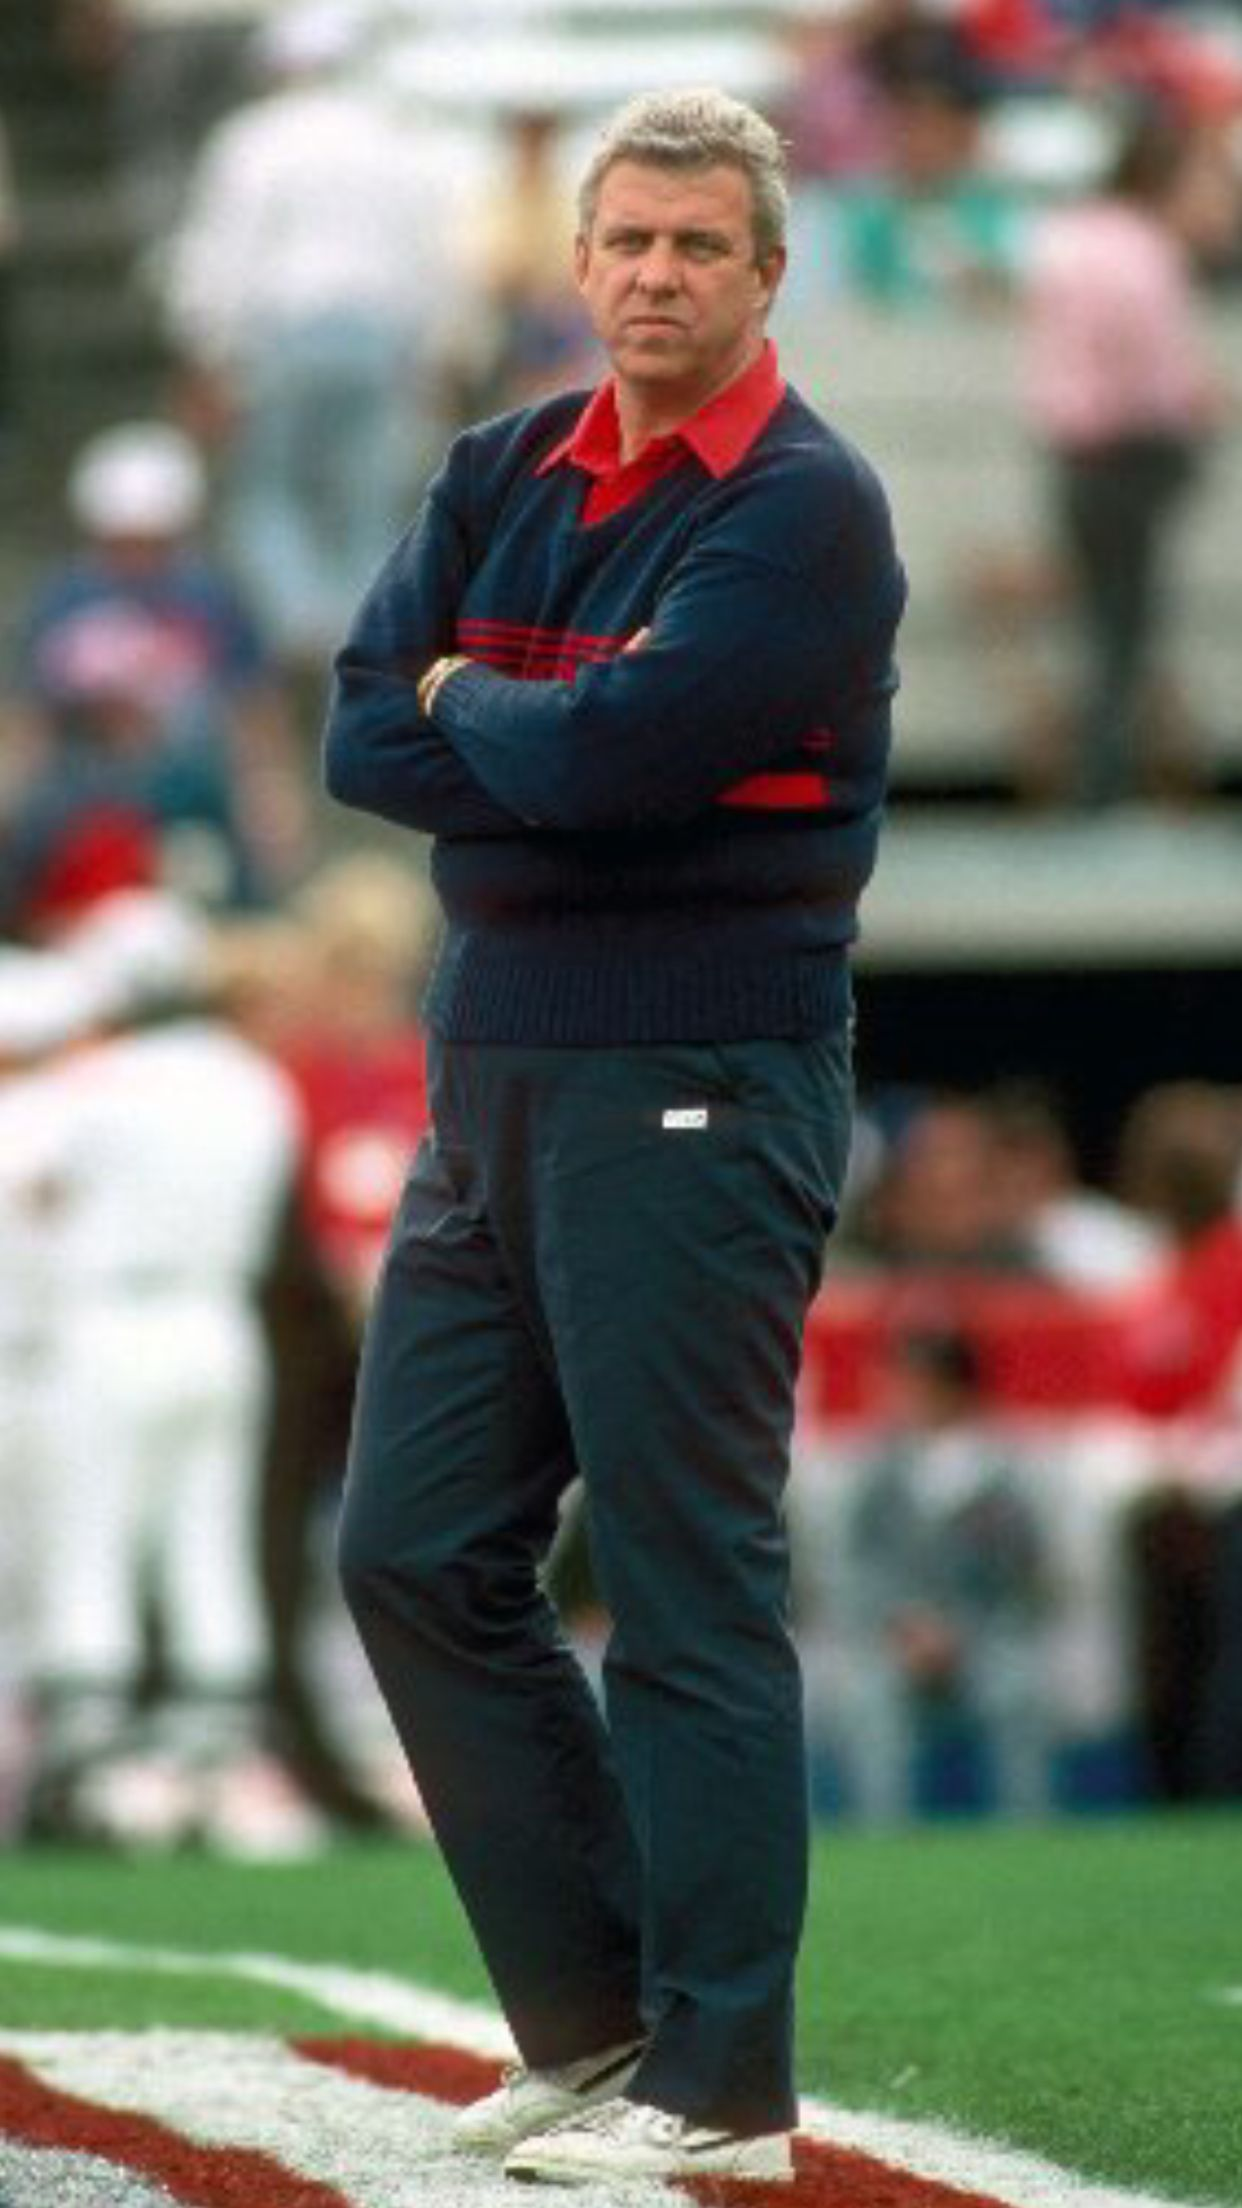 Former head coach of the new york giants bill parcells